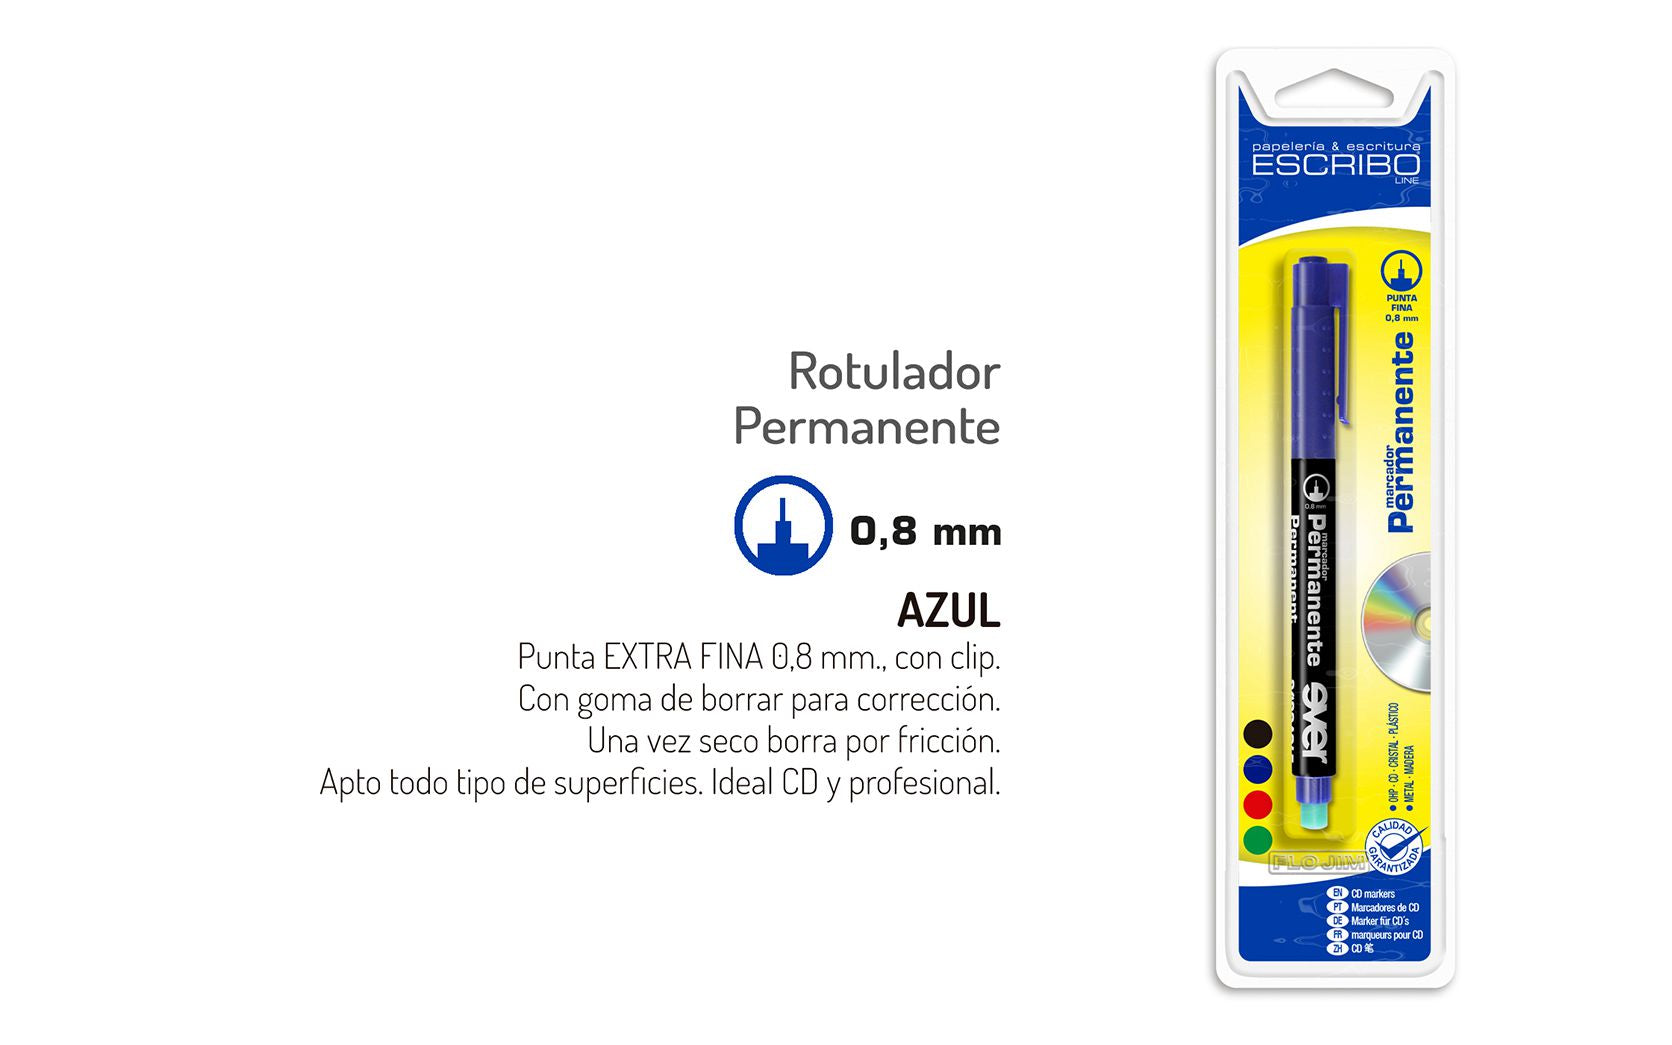 Blister Rotulador Permanente Multisuperficie (CD)- Azul